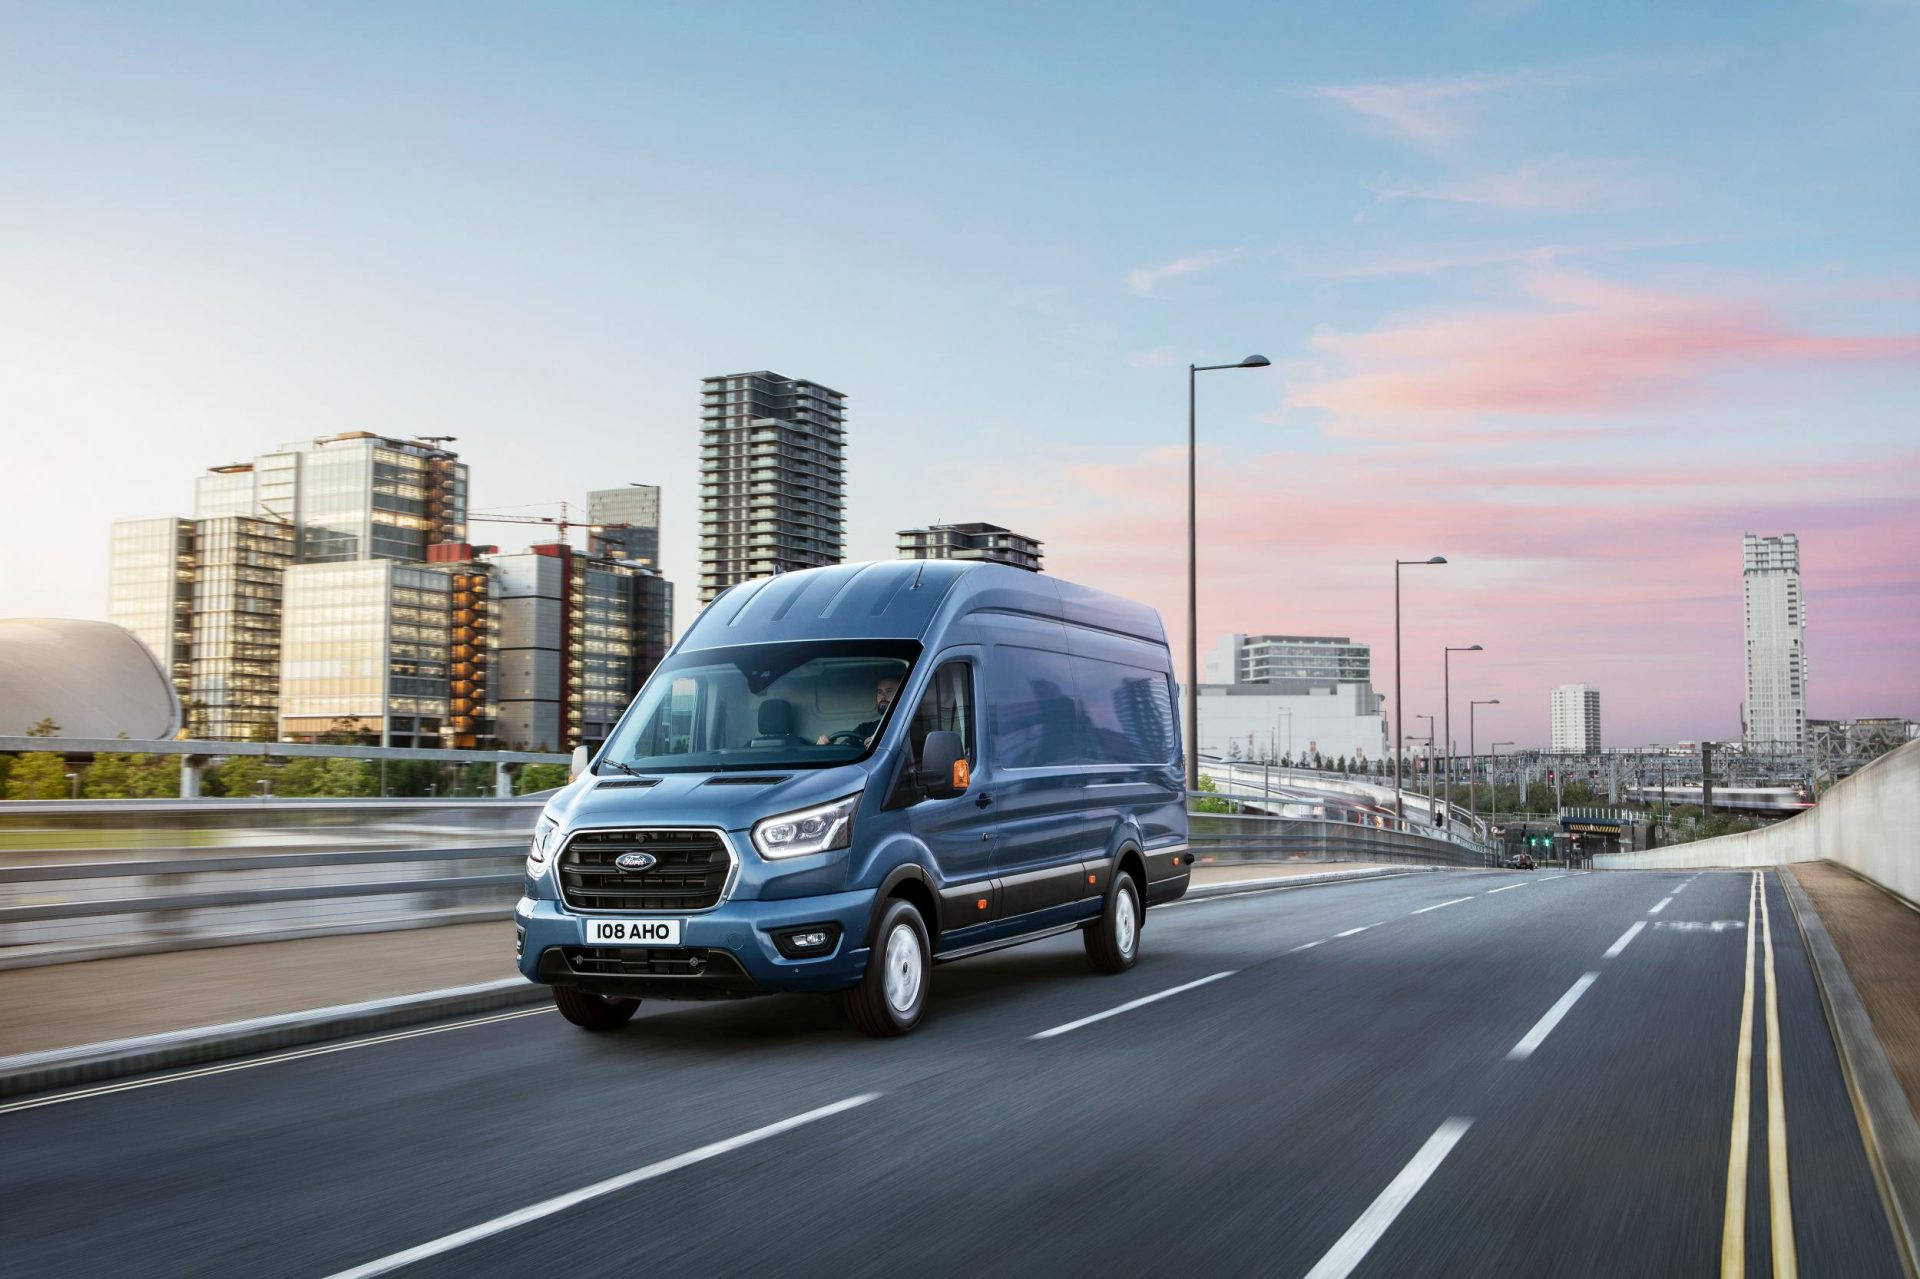 blue ford van on the road for a trade & upgrade